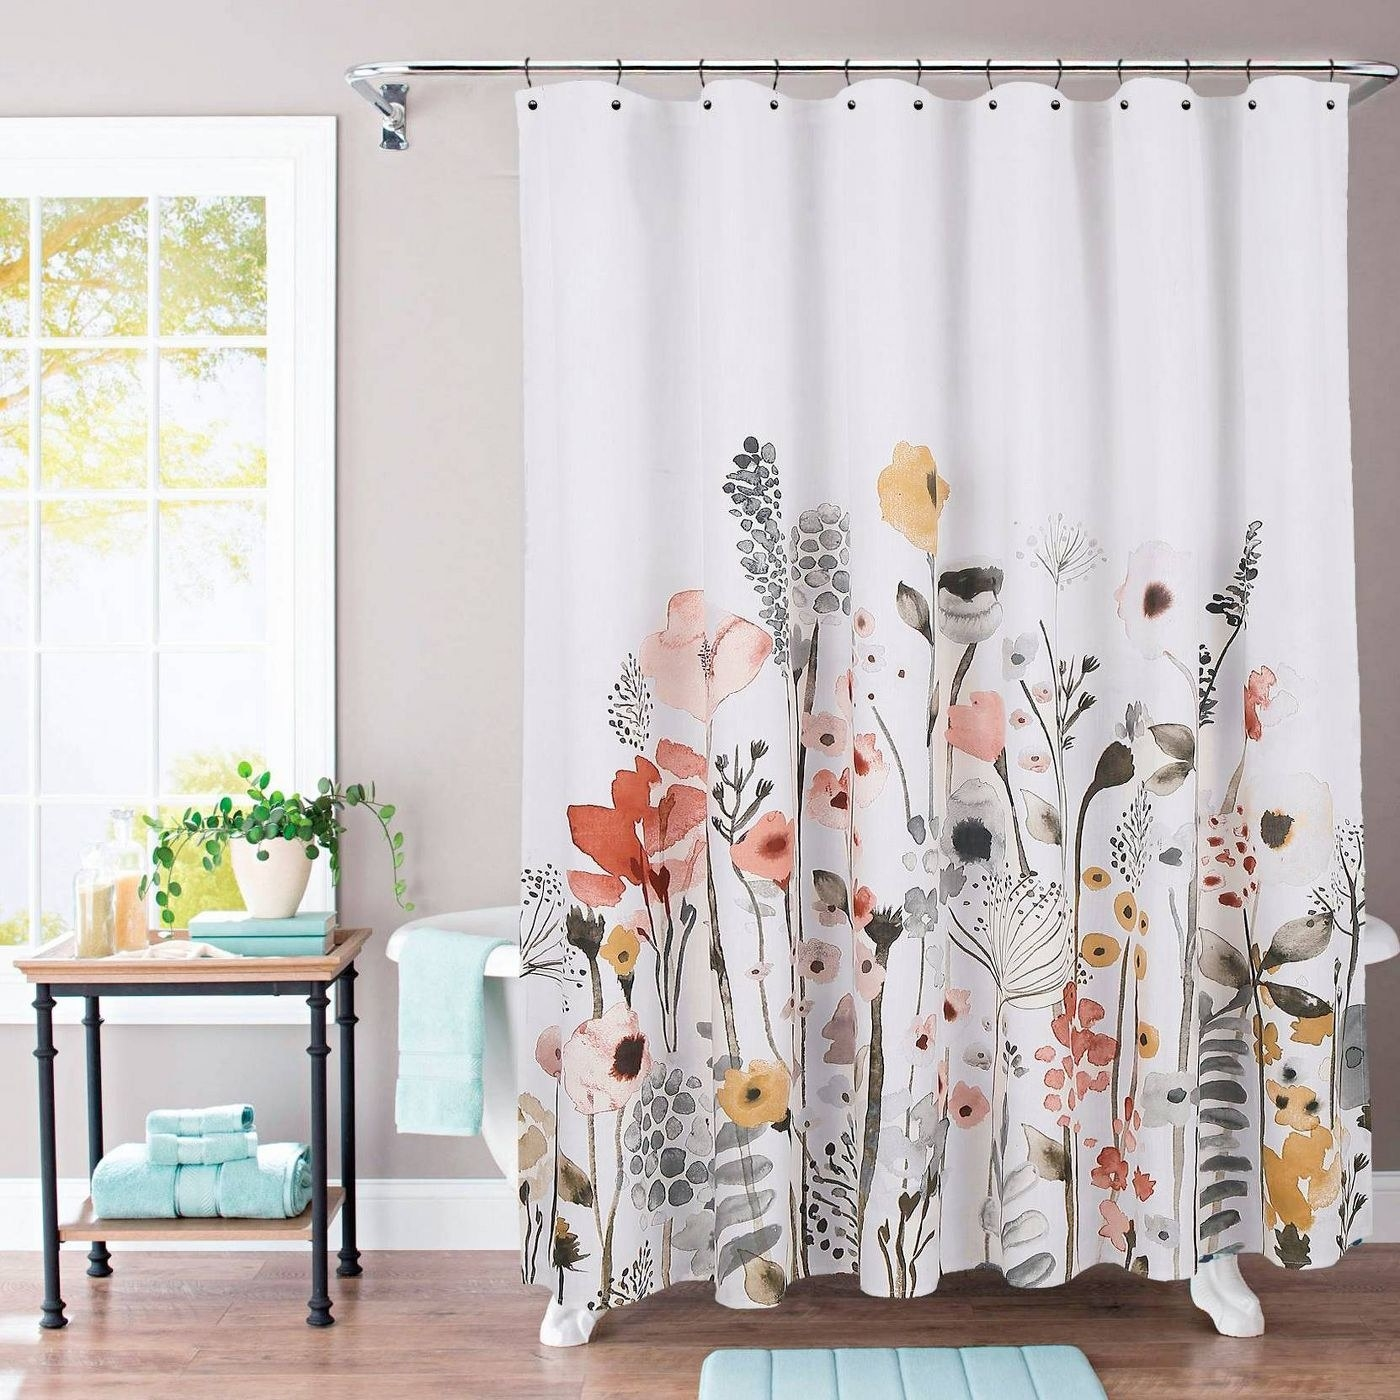 The floral shower curtain hanging